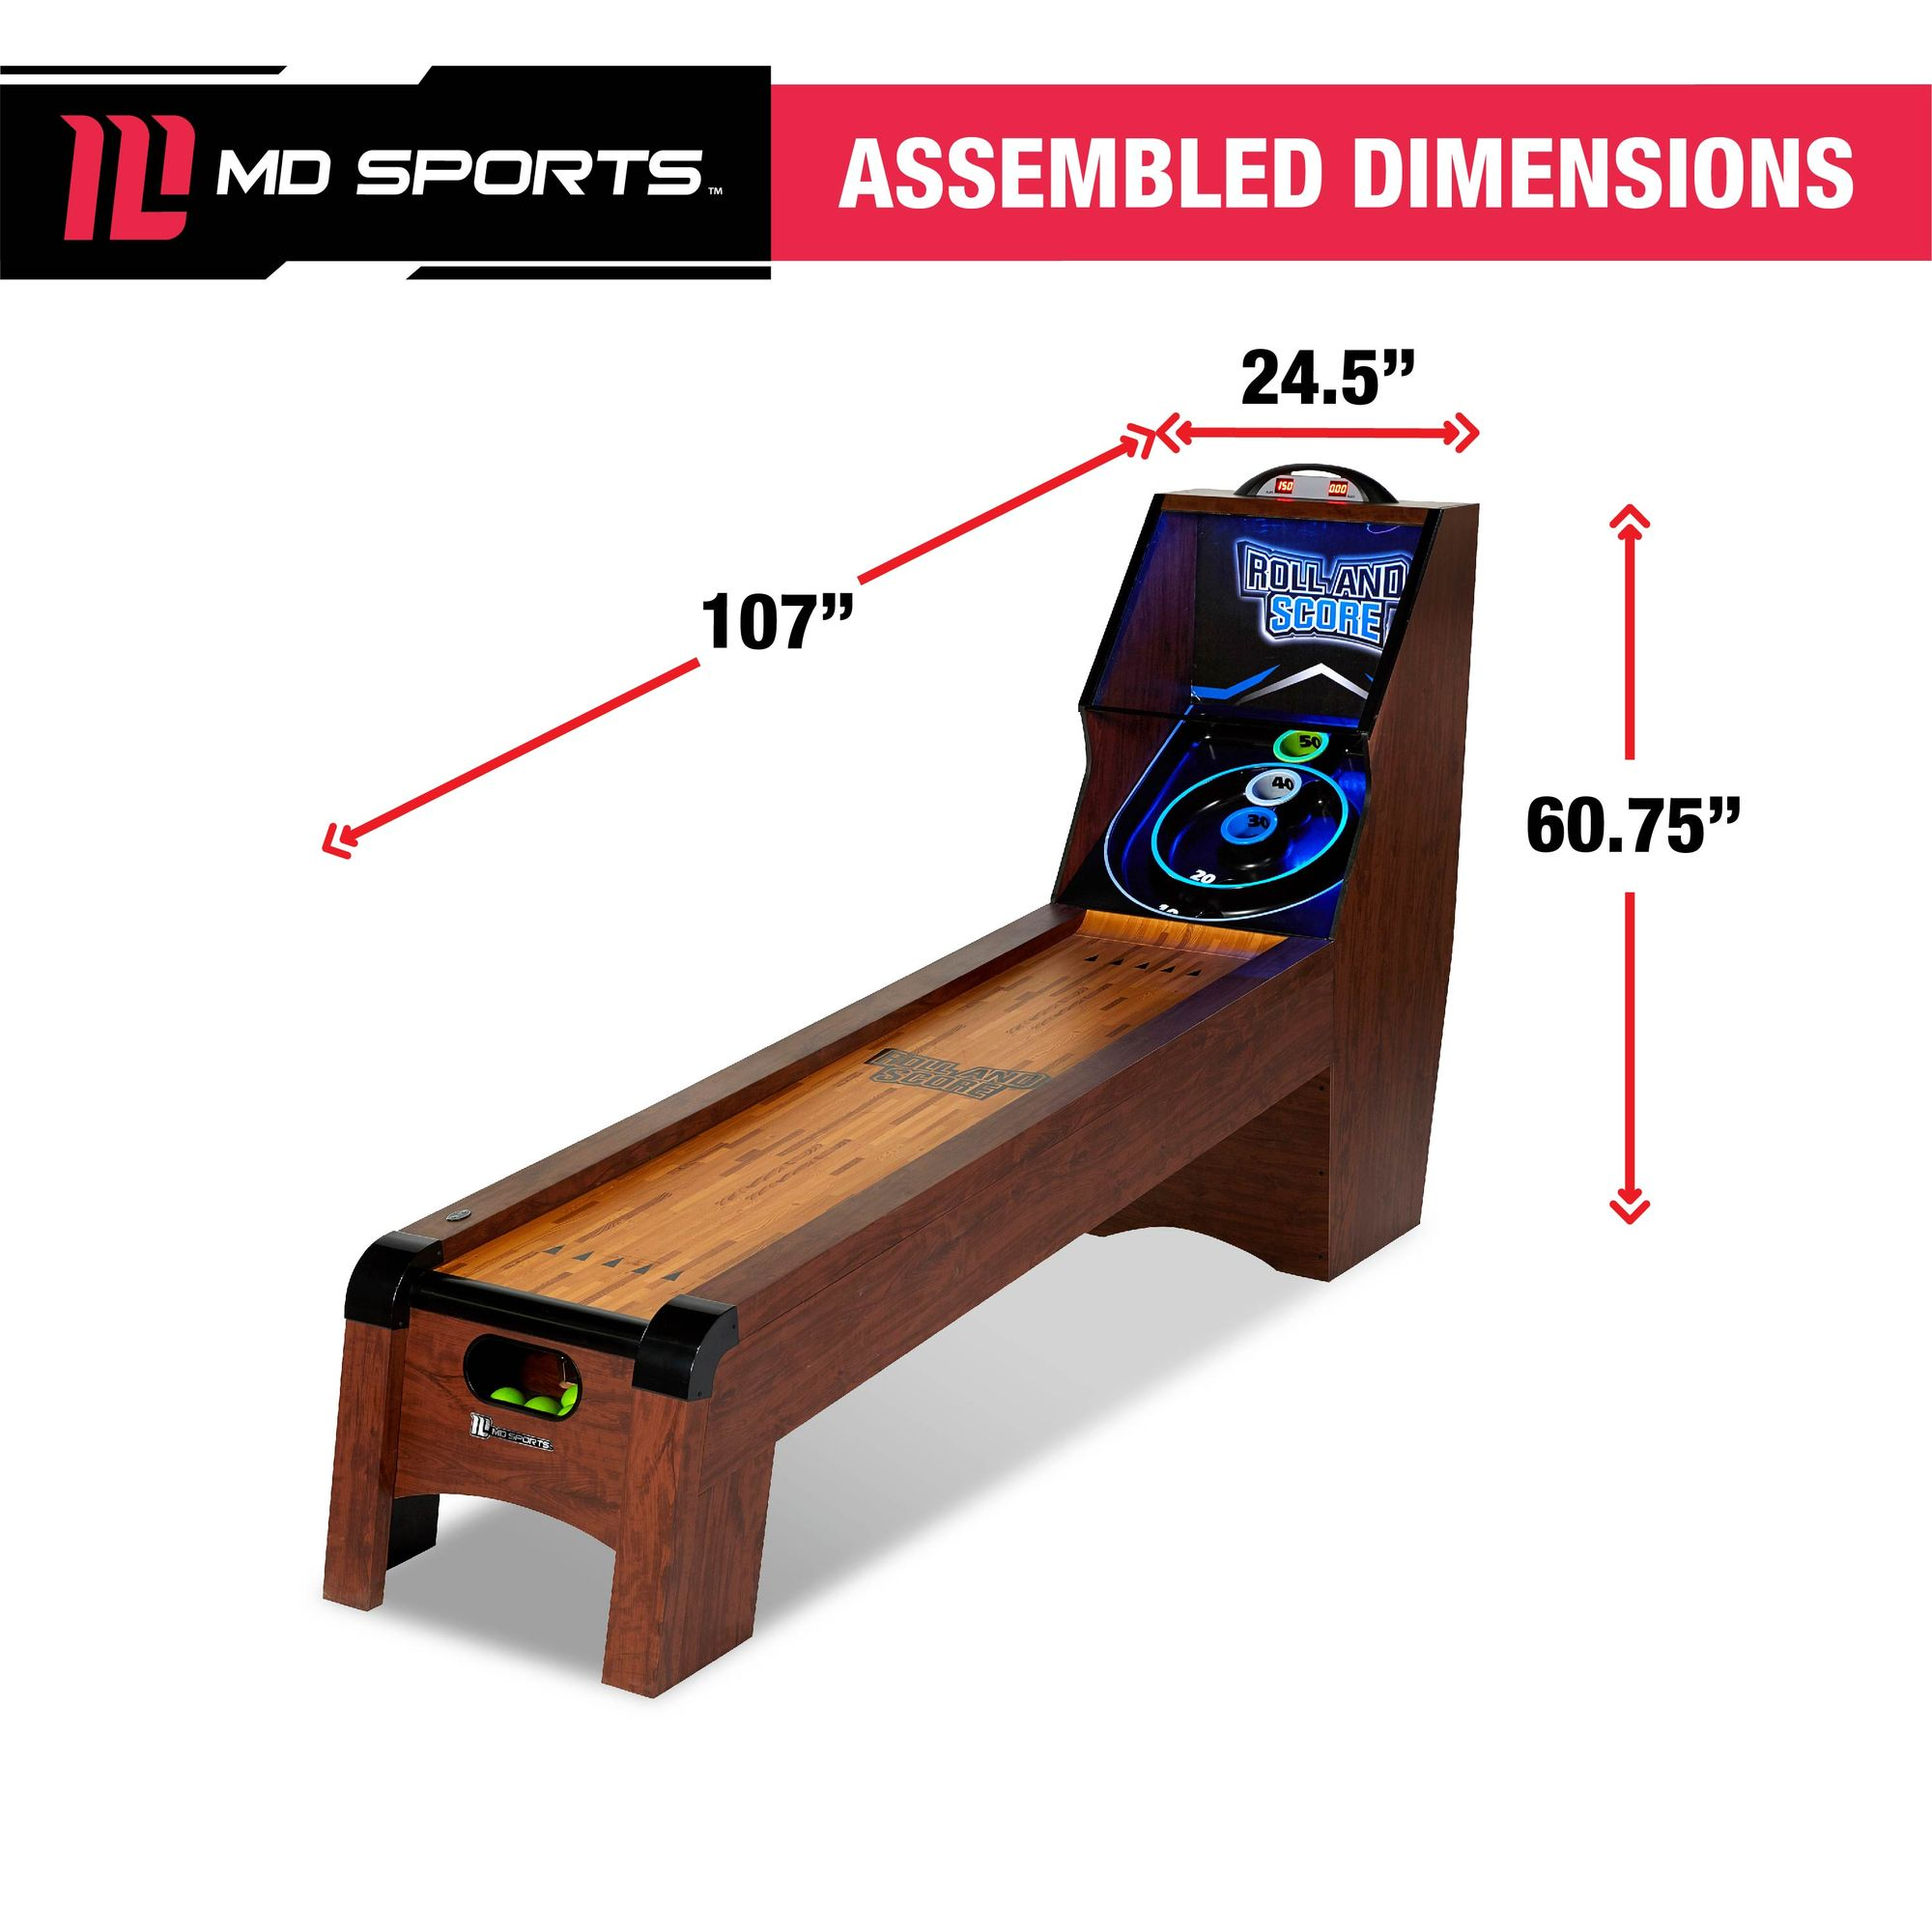 MD Sports 9 Ft  Roll and Score Table, Arcade Game, Includes 4 Skee Ball,  LED light